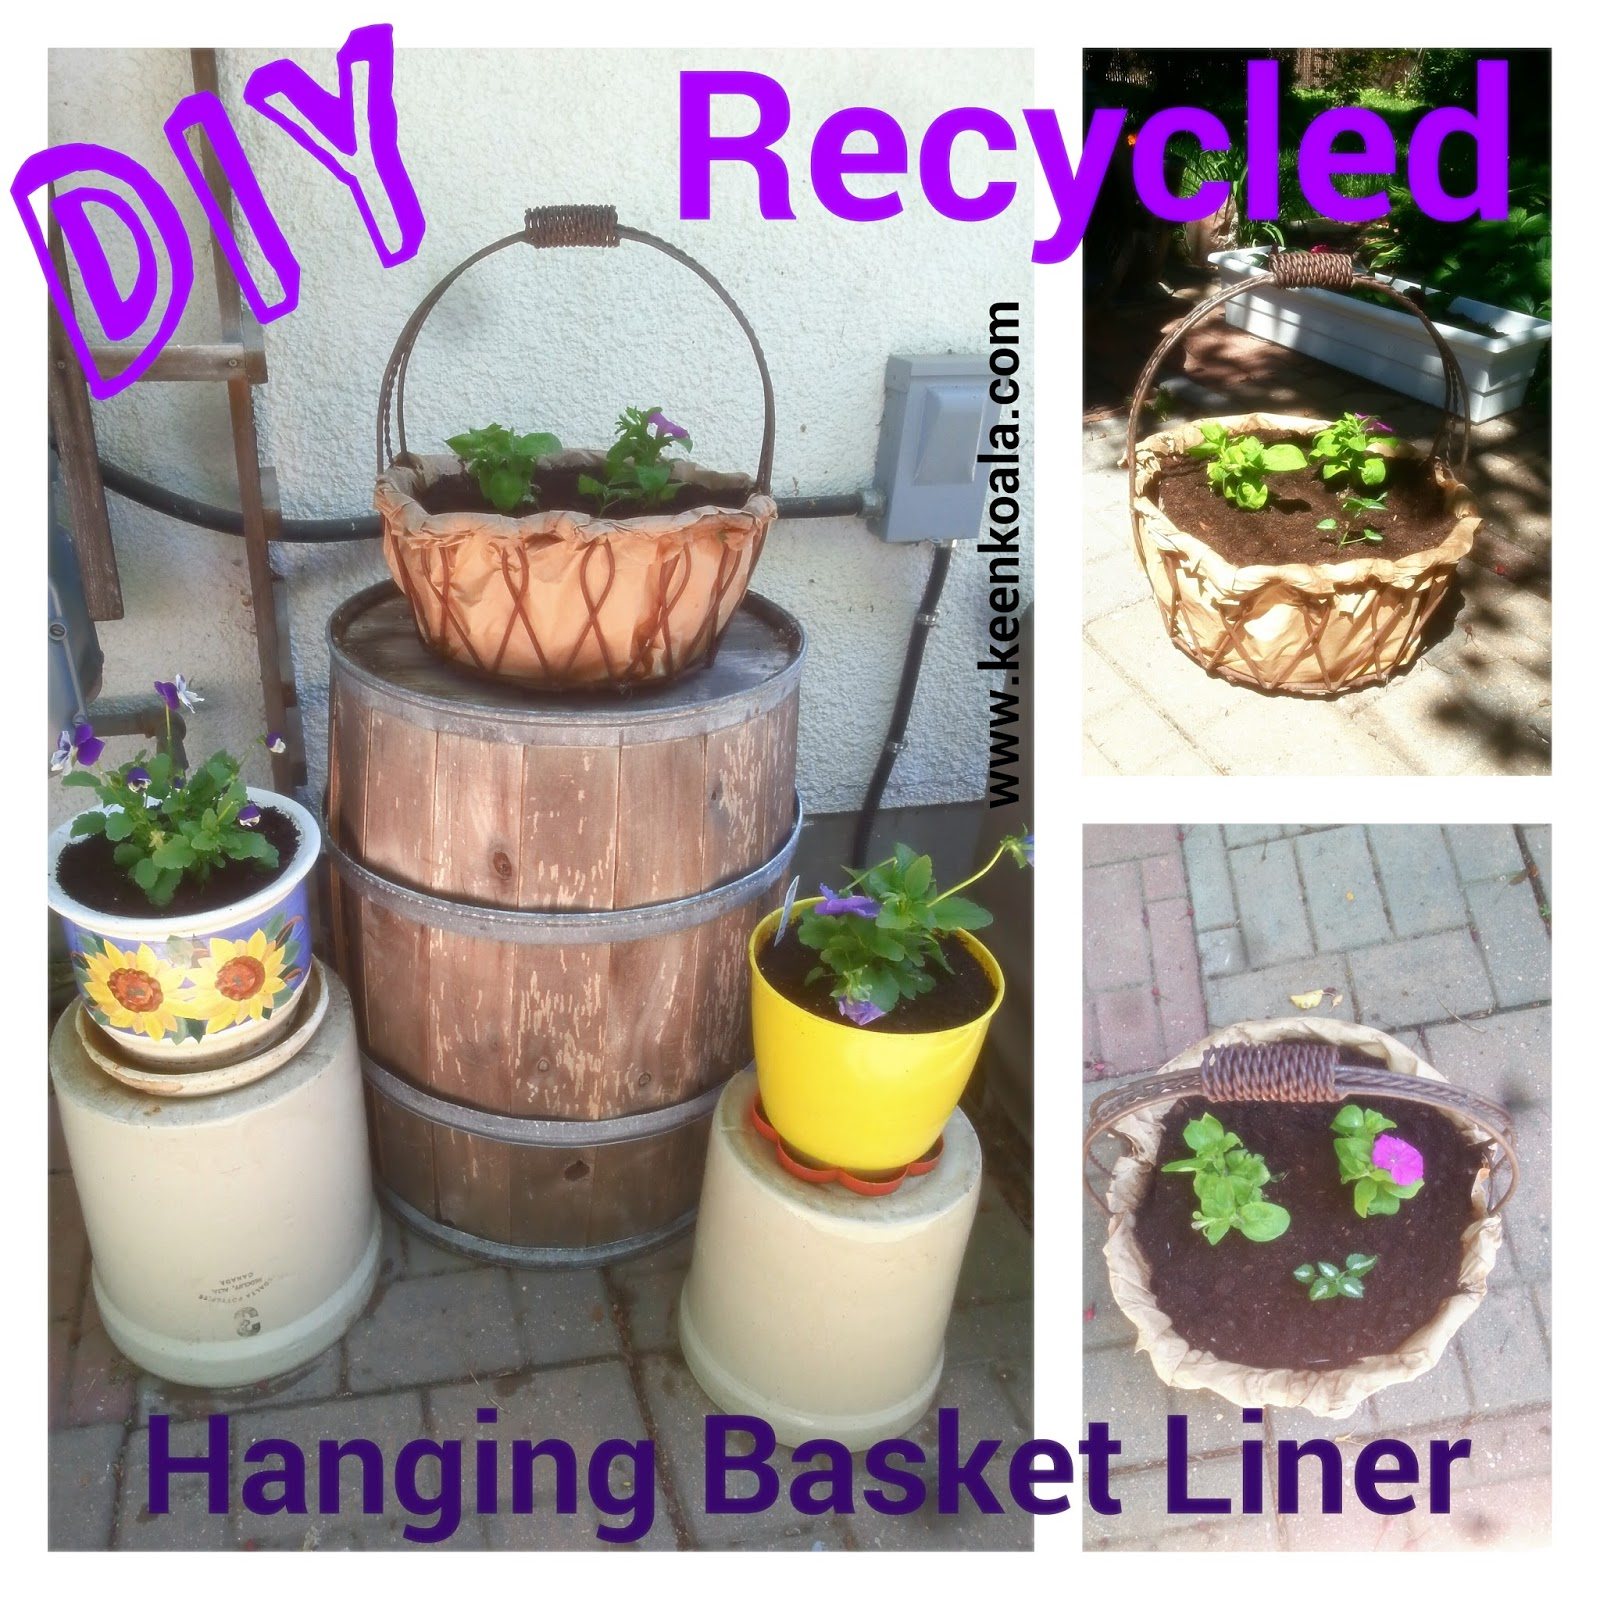 Diy Hanging Fruit Basket Ideas And Pictures: Keen Koala: DIY Hanging Basket Liner Made From Recycled